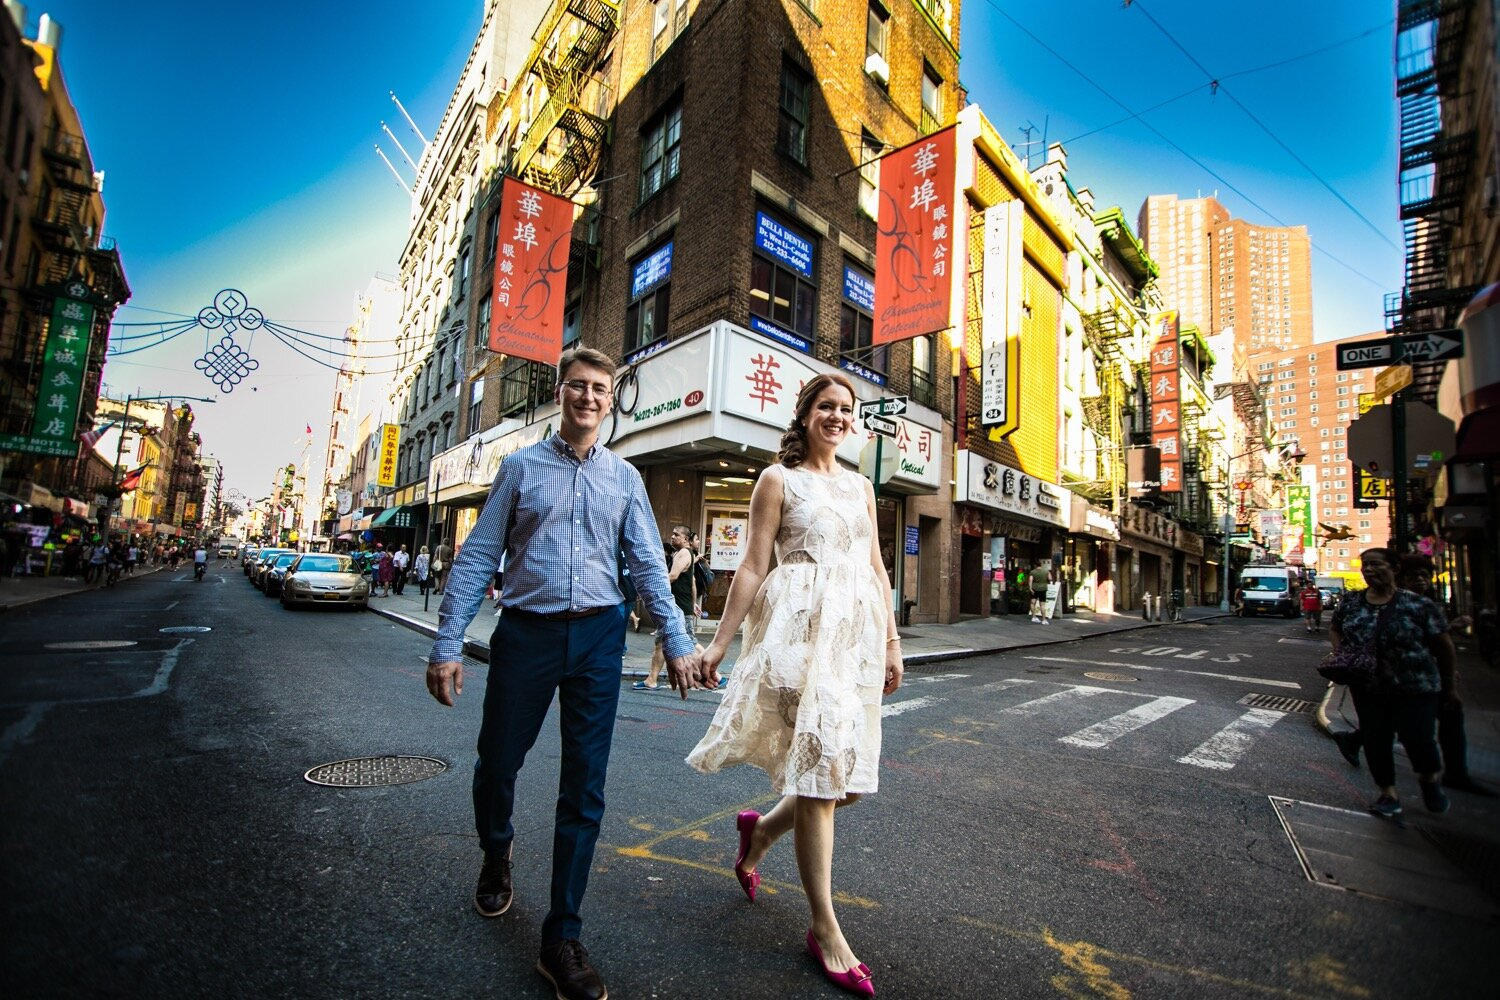 A quirky wedding photo using a wide angle lens, showing the bride and groom in Chinatown, NYC.